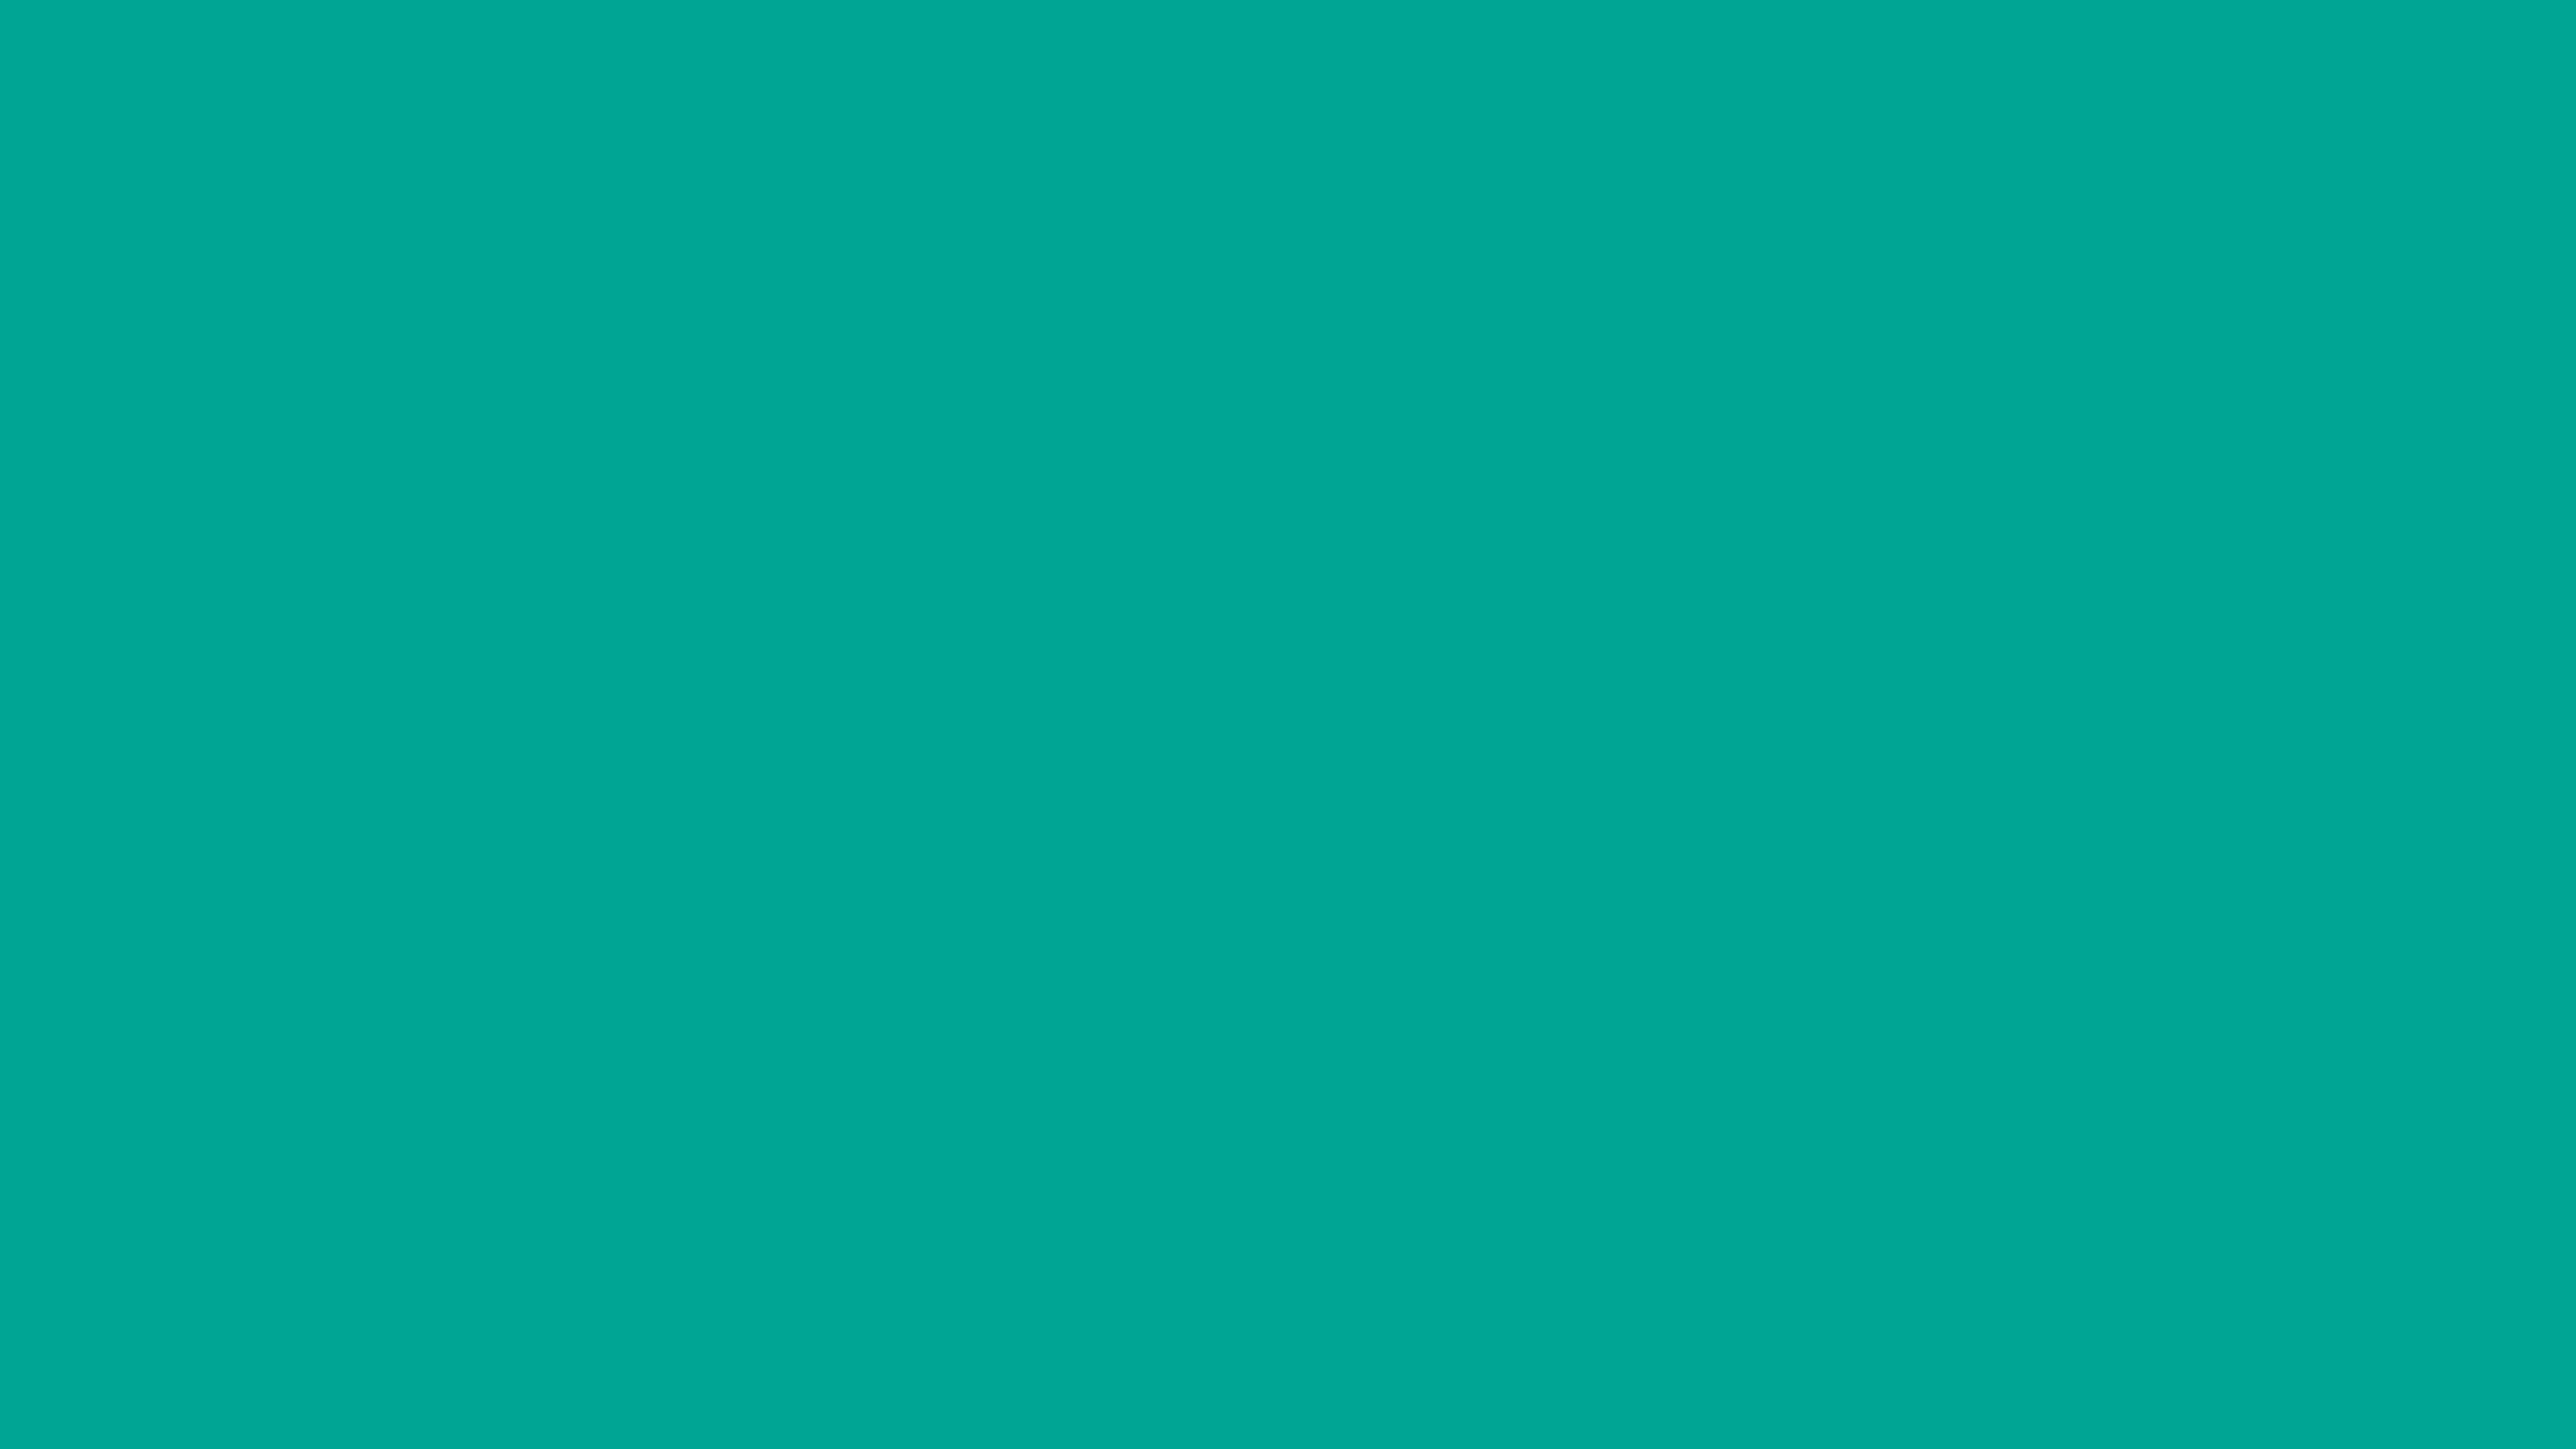 5120x2880 Persian Green Solid Color Background